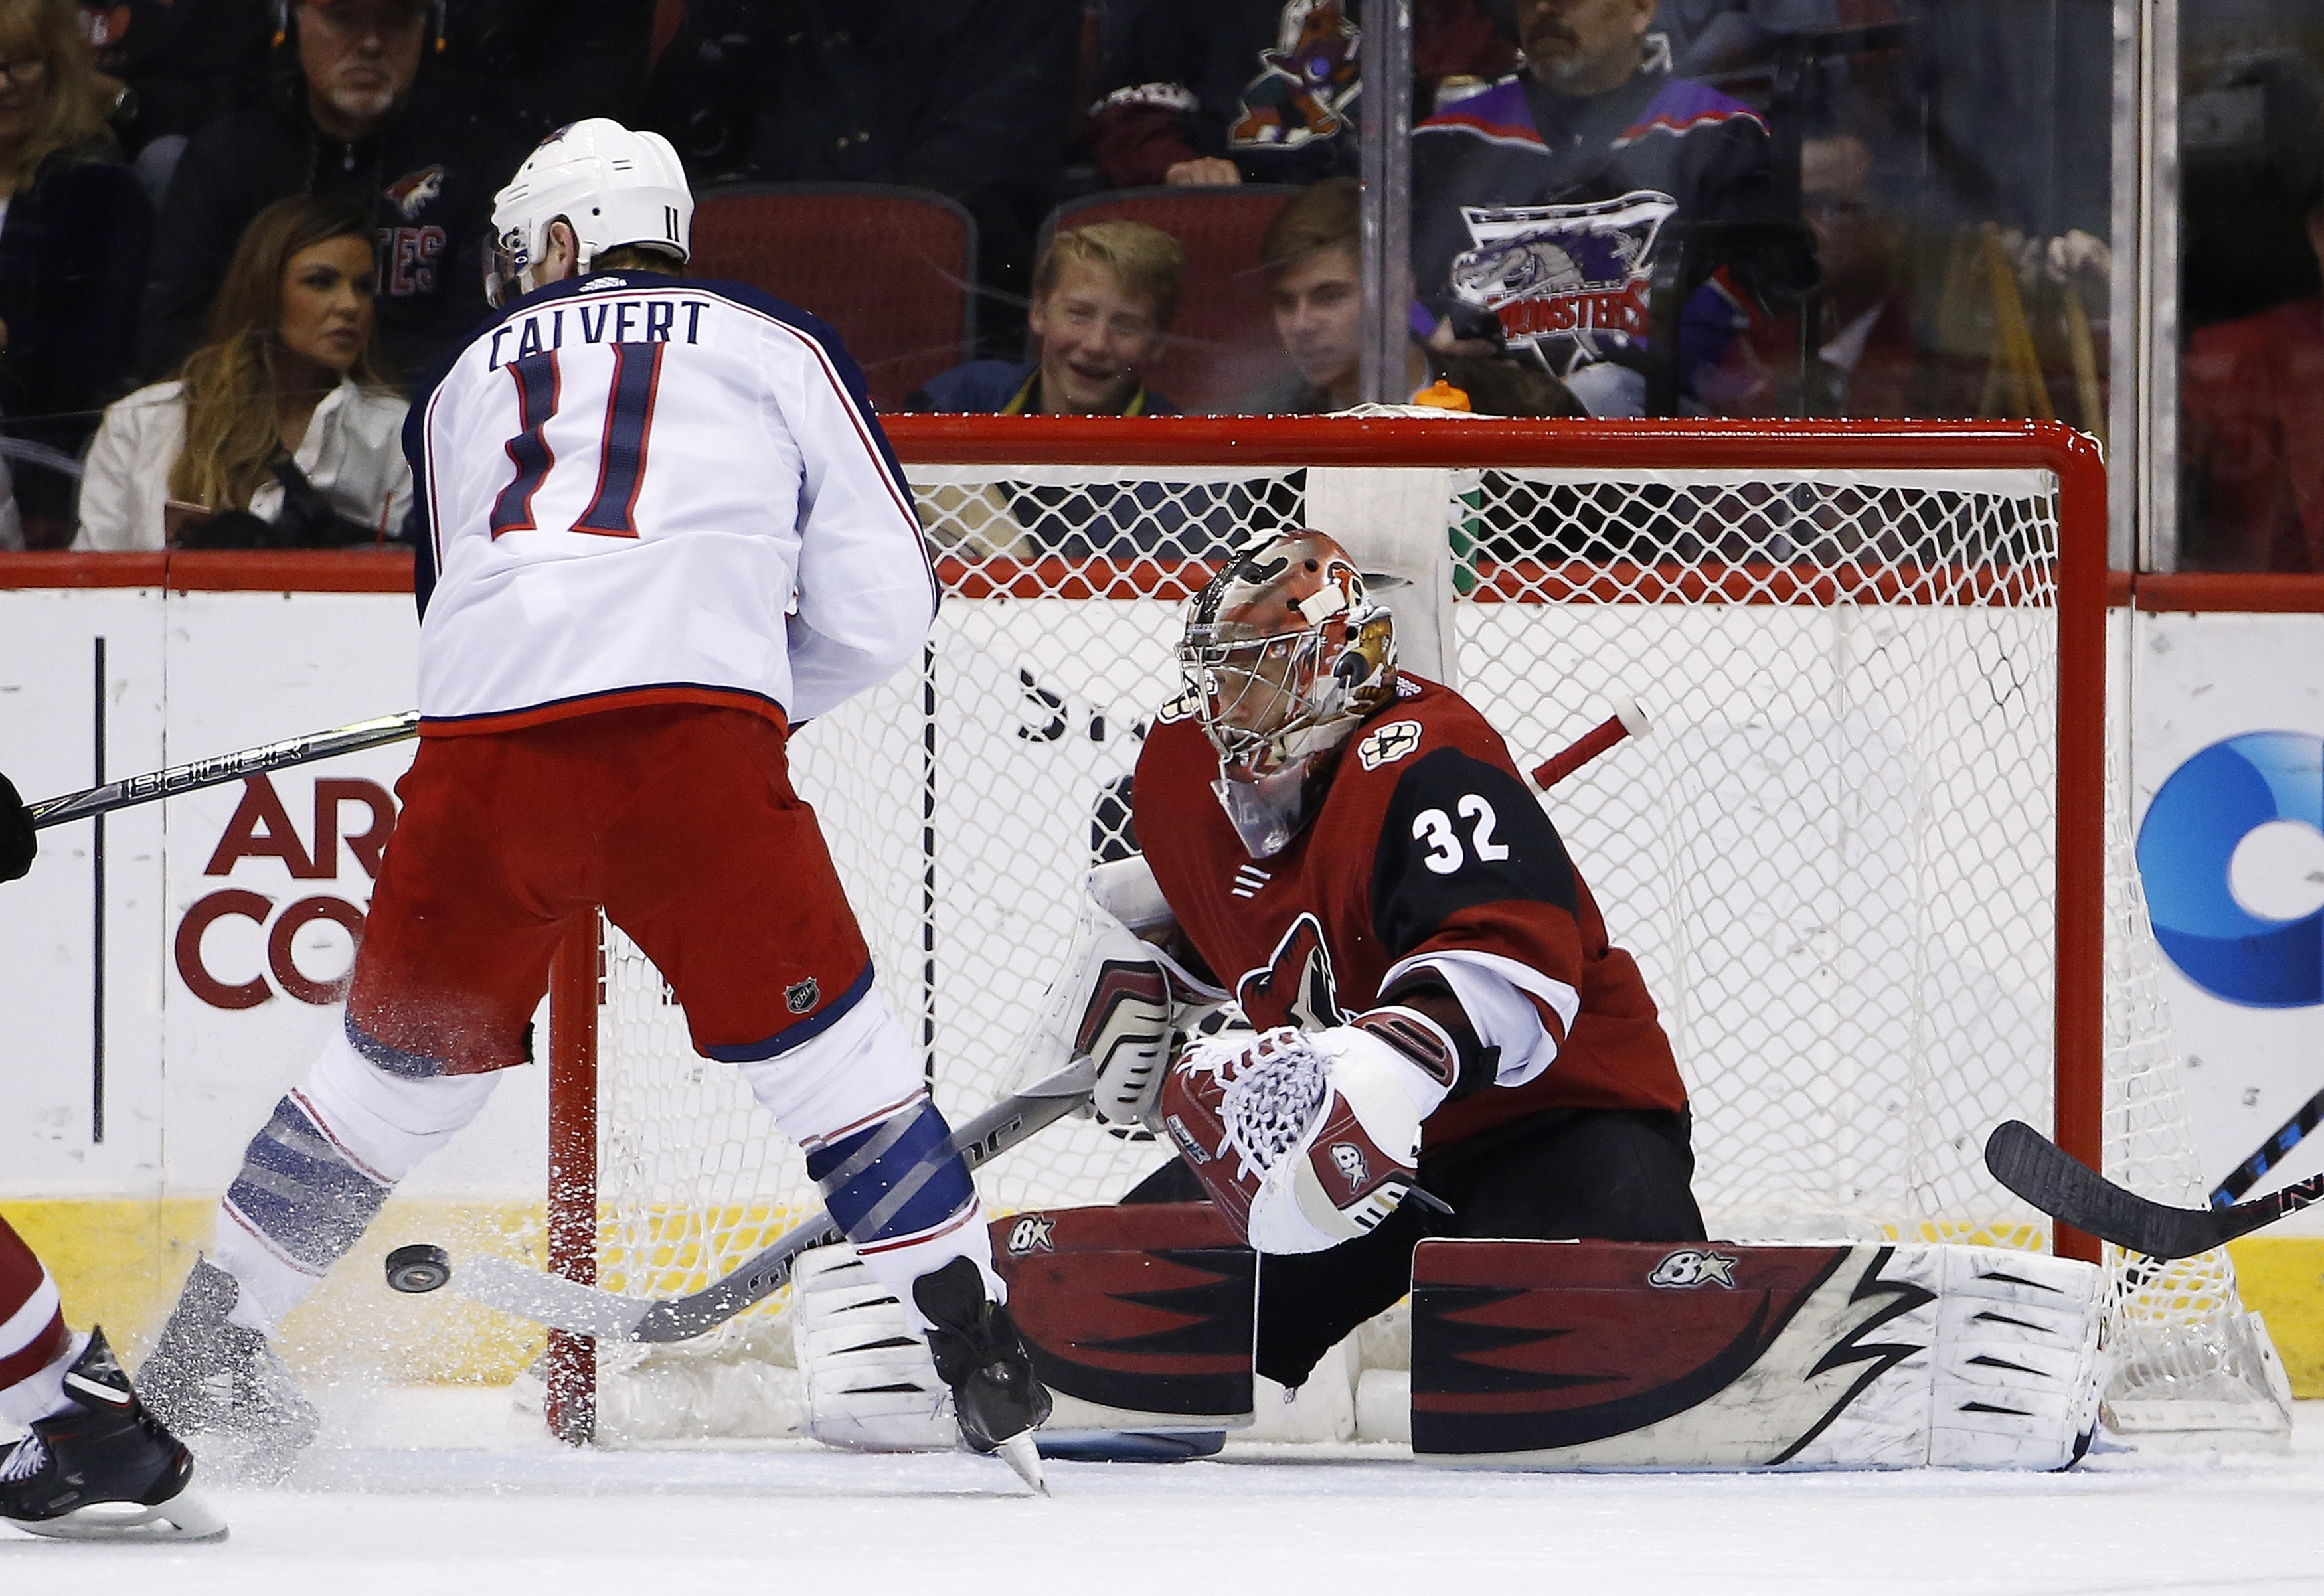 Arizona Coyotes goaltender Antti Raanta (32) makes a save on a shot by Columbus Blue Jackets left wing Matt Calvert (11) during the second period of an NHL hockey game, Thursday, Jan. 25, 2018, in Glendale, Ariz. (AP Photo/Ross D. Franklin)